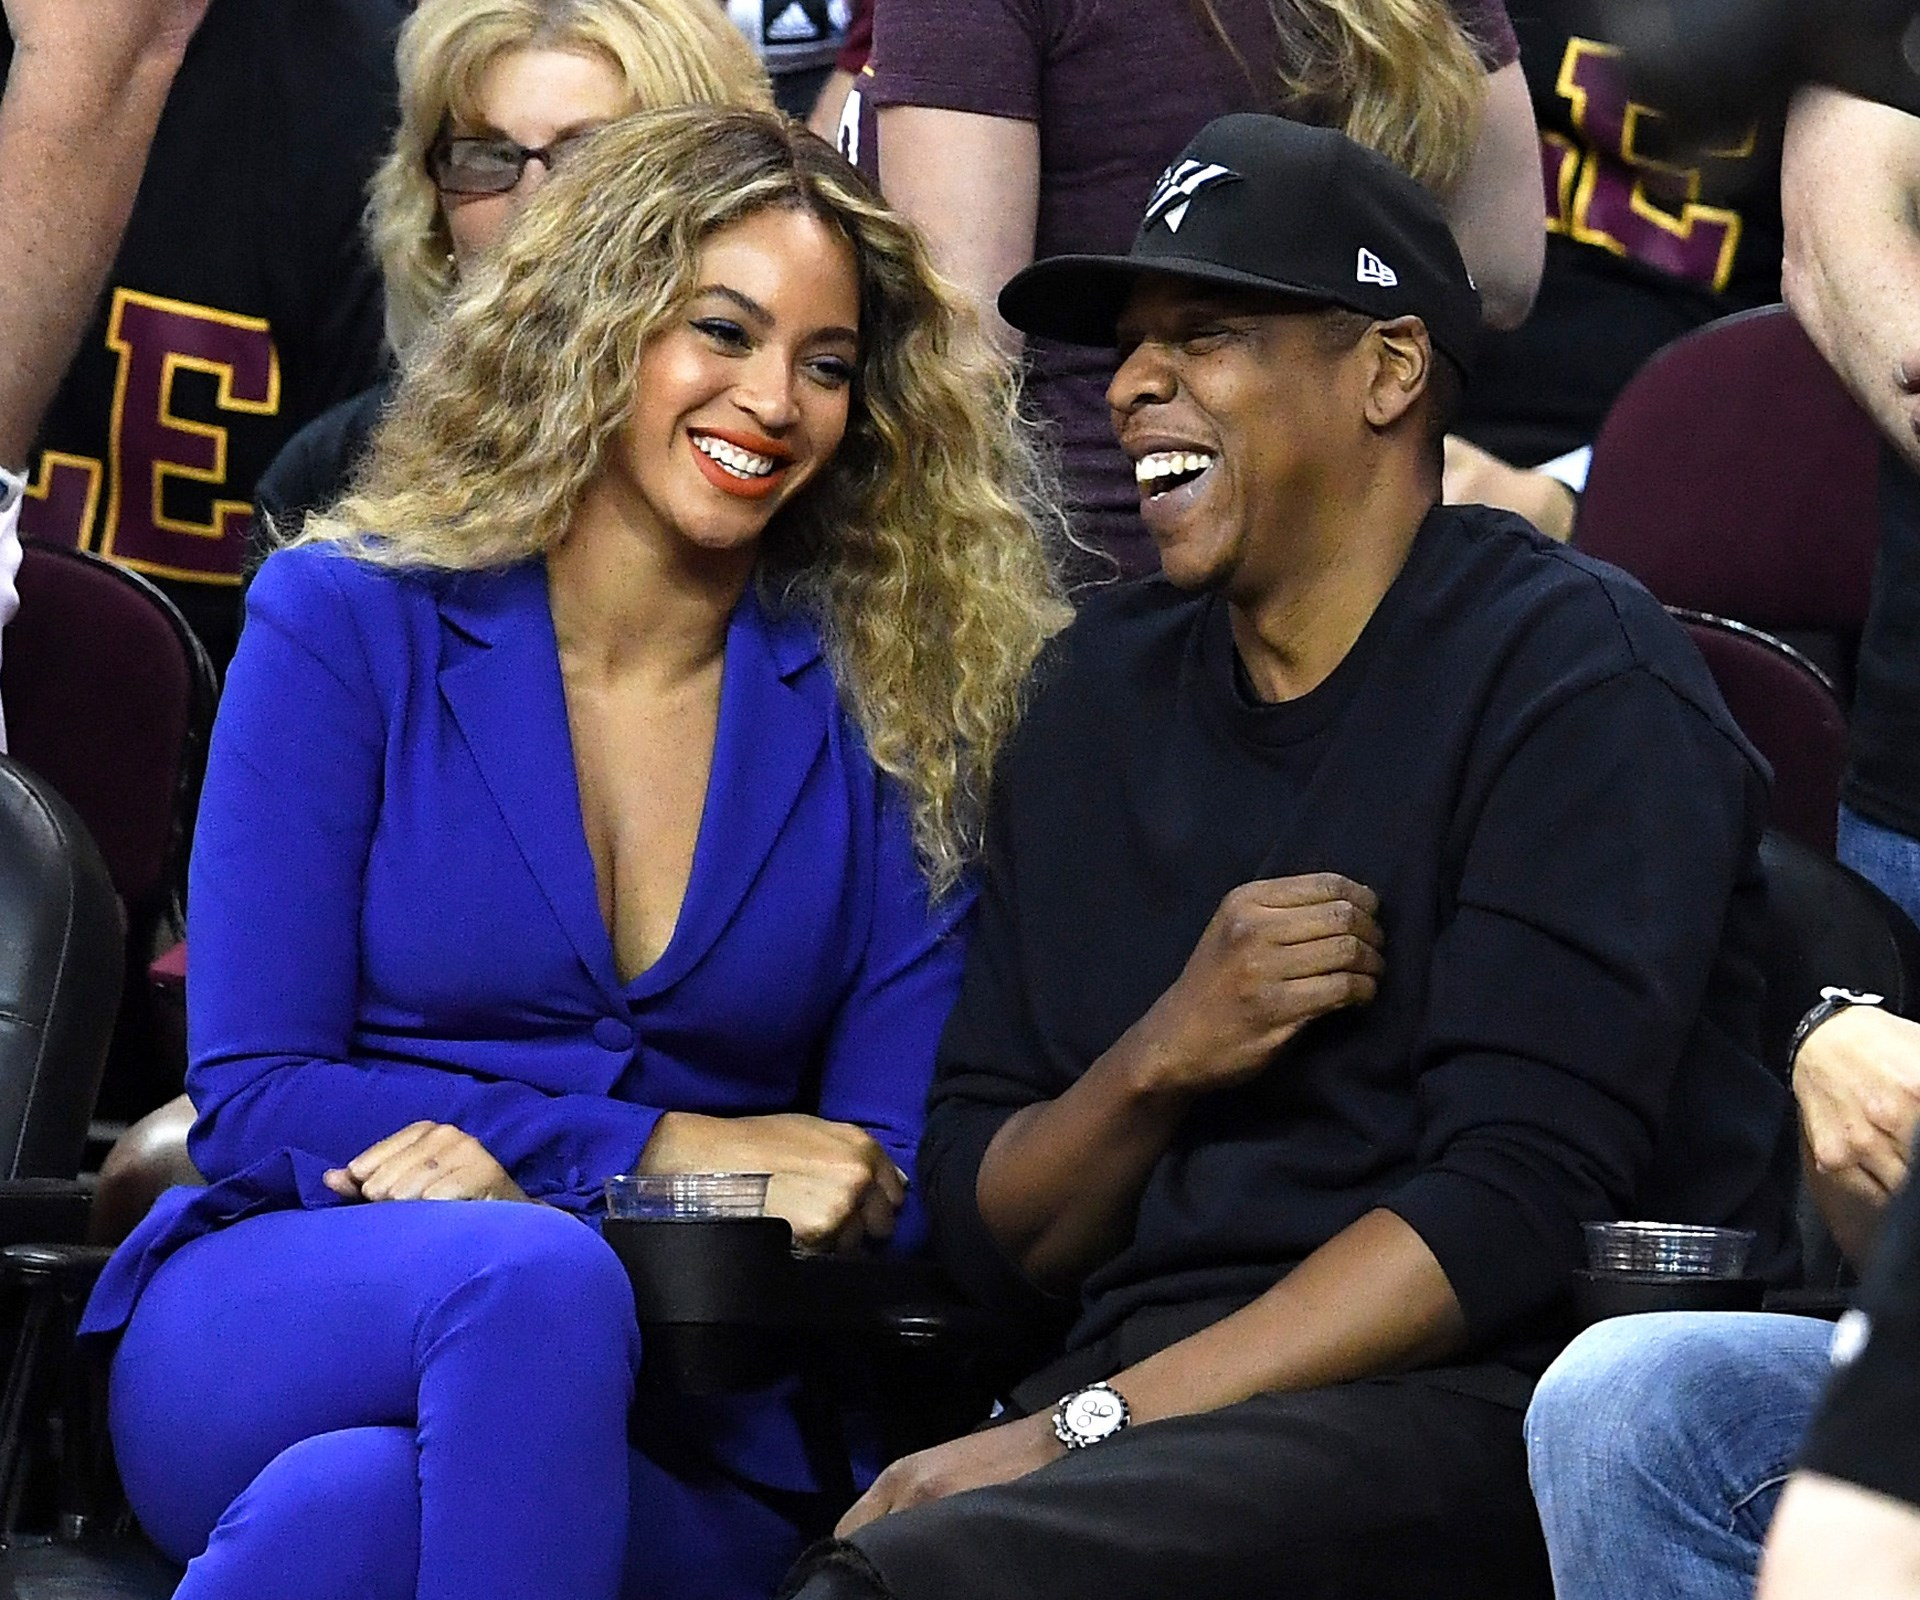 **Beyonce and Jay Z: 12 years** Beyonce, 34, and Jay Z, 46, are undoubtedly the power couple of the music industry and have collaborated together on many hits including 'Crazy in Love', 'Drunk in Love' and 'Bonnie and Clyde'. **See video from their wedding in the next slide**